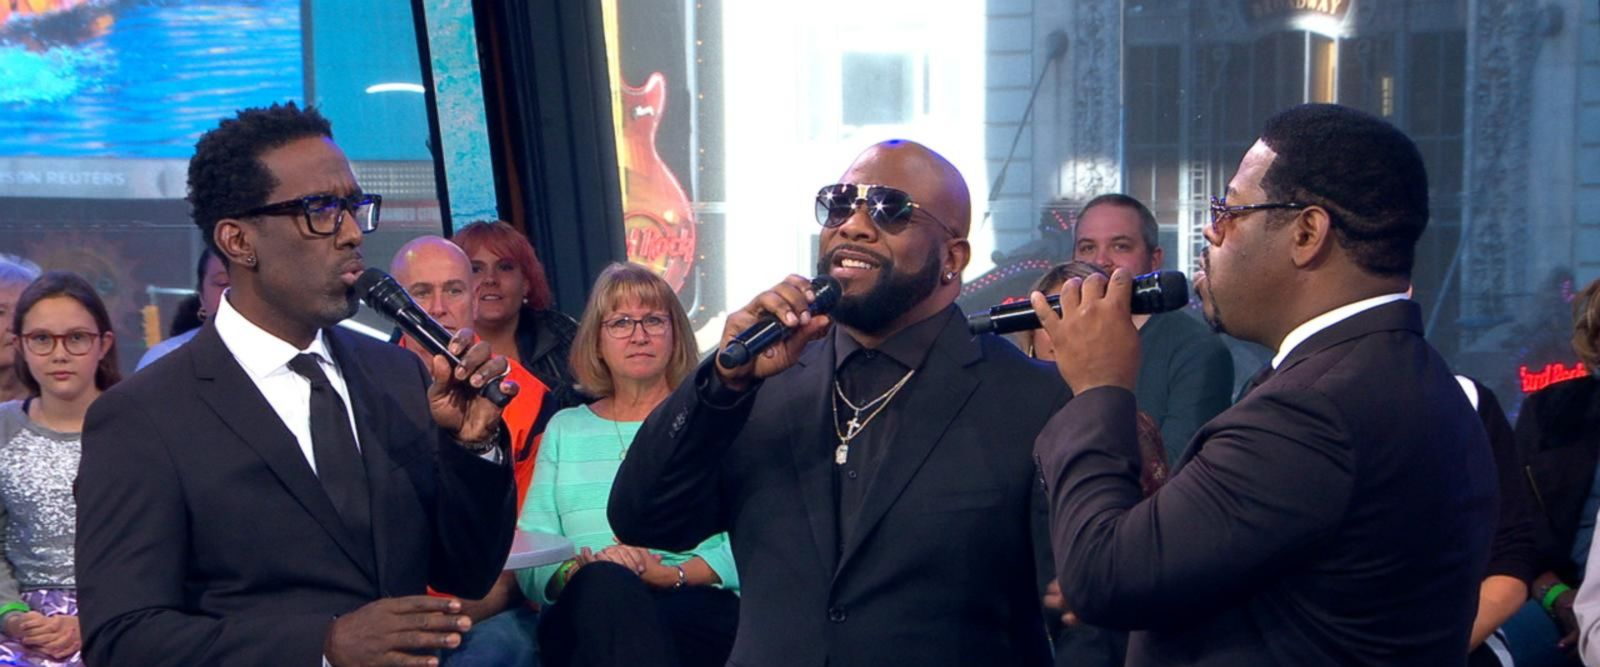 VIDEO: Boyz II Men performs 'It's So Hard to Say Goodbye to Yesterday'